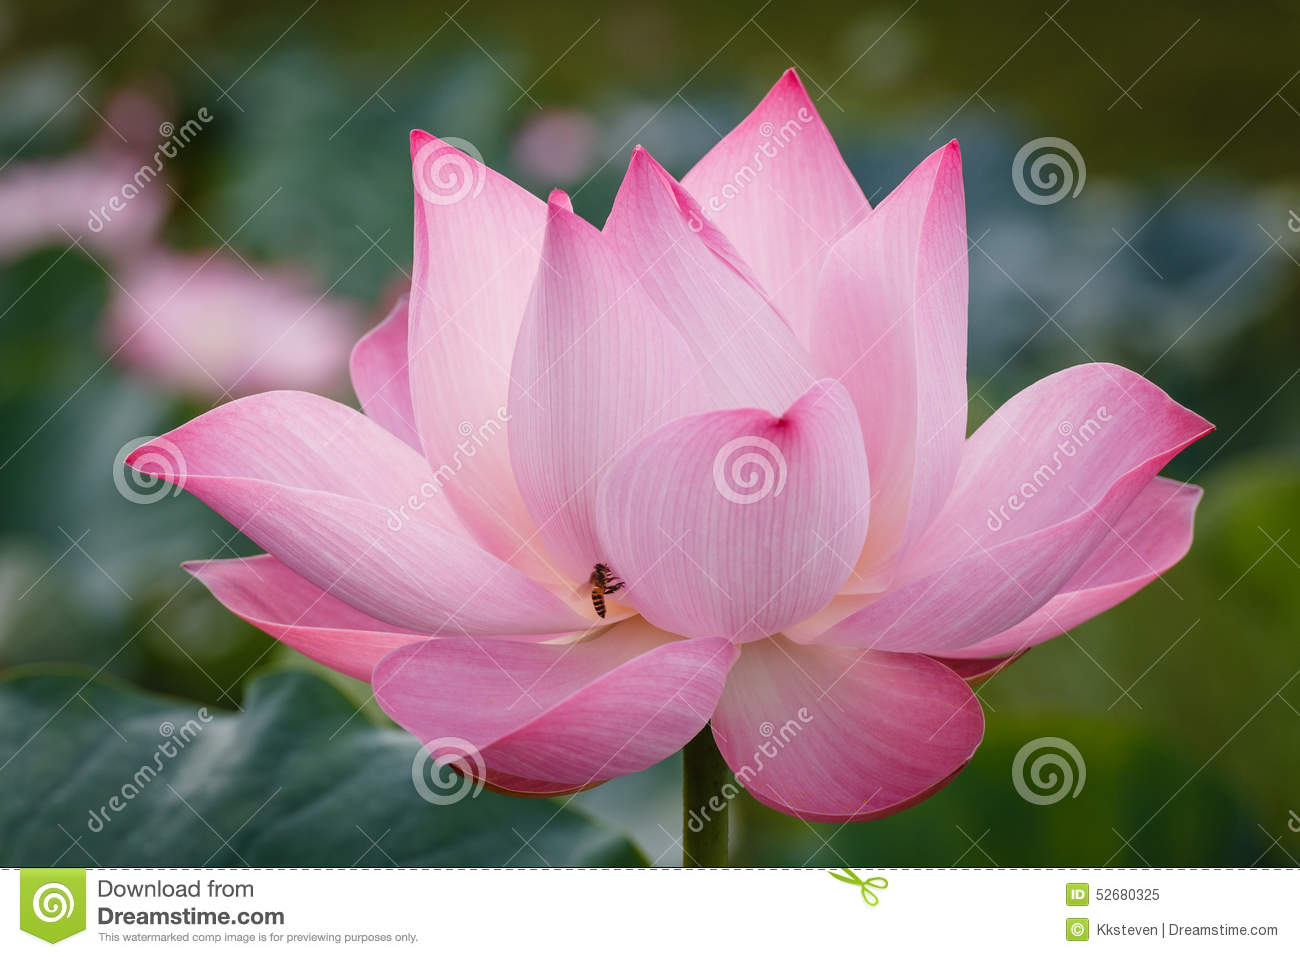 The Blossom of Pink Lotus with The Bee